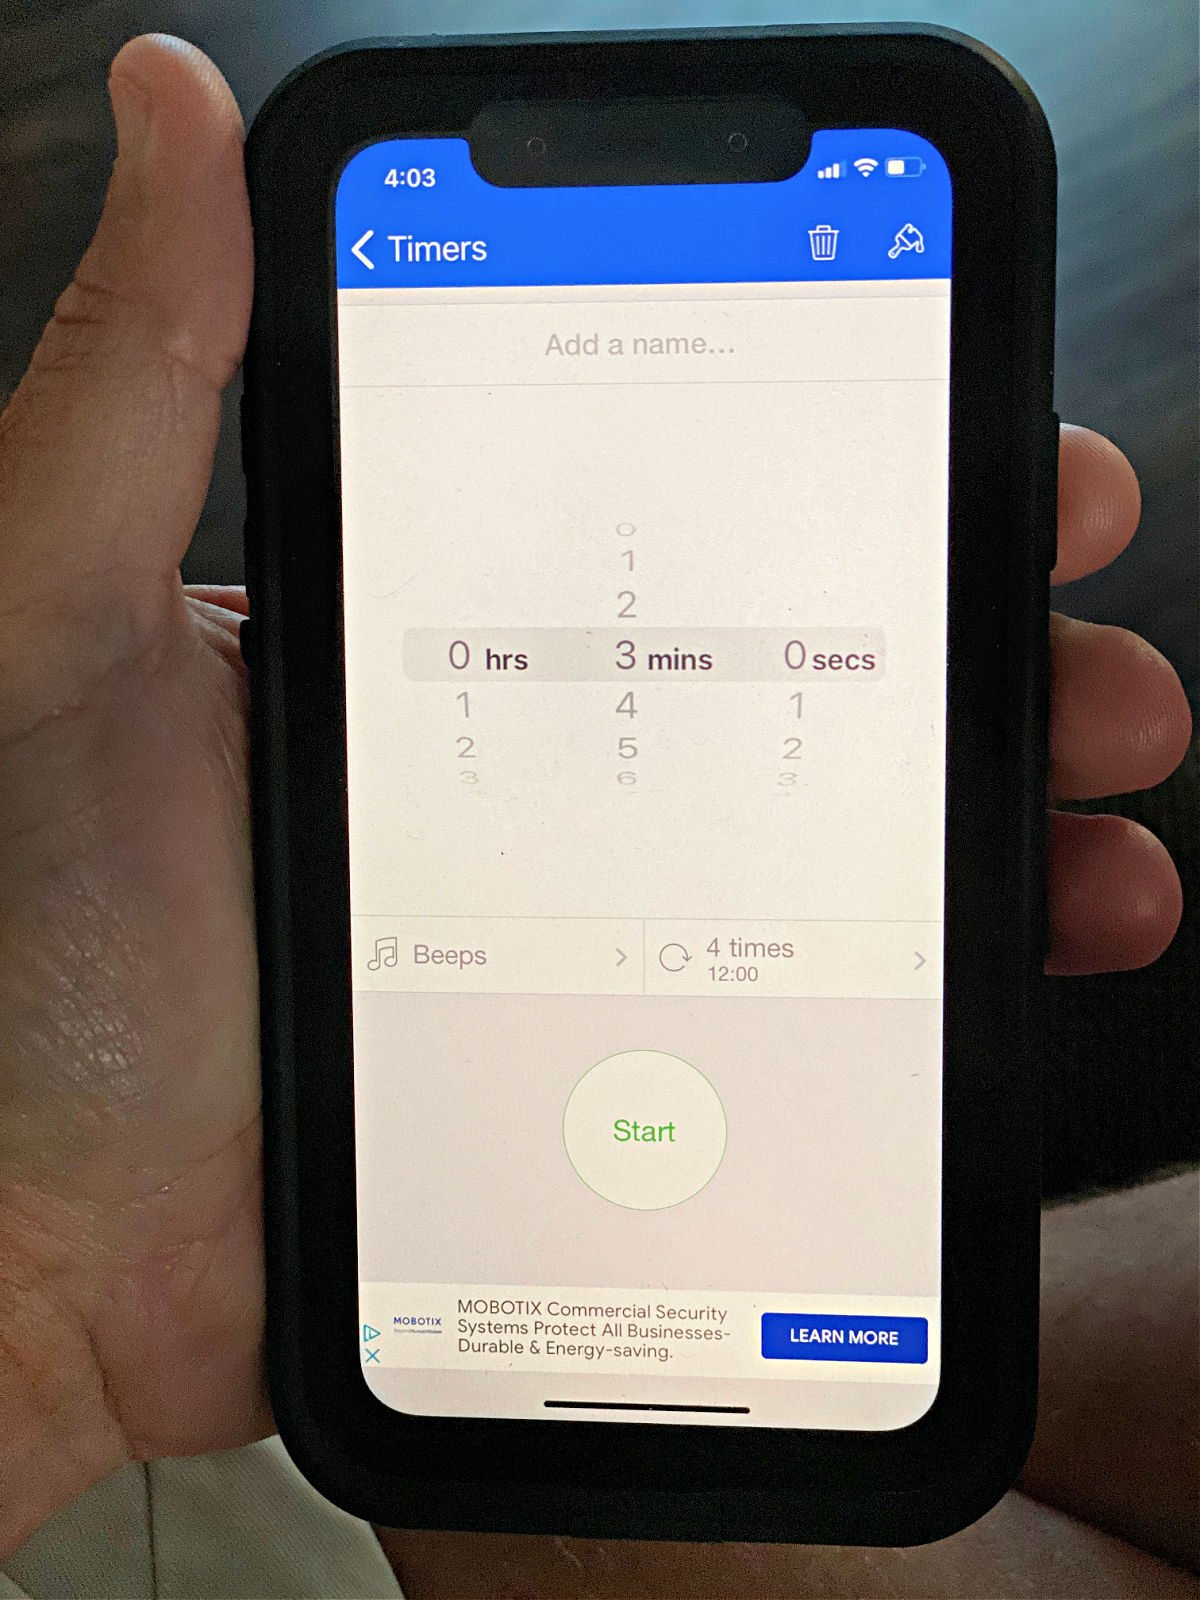 Hand holding an iPhone with a timer app on the screen.